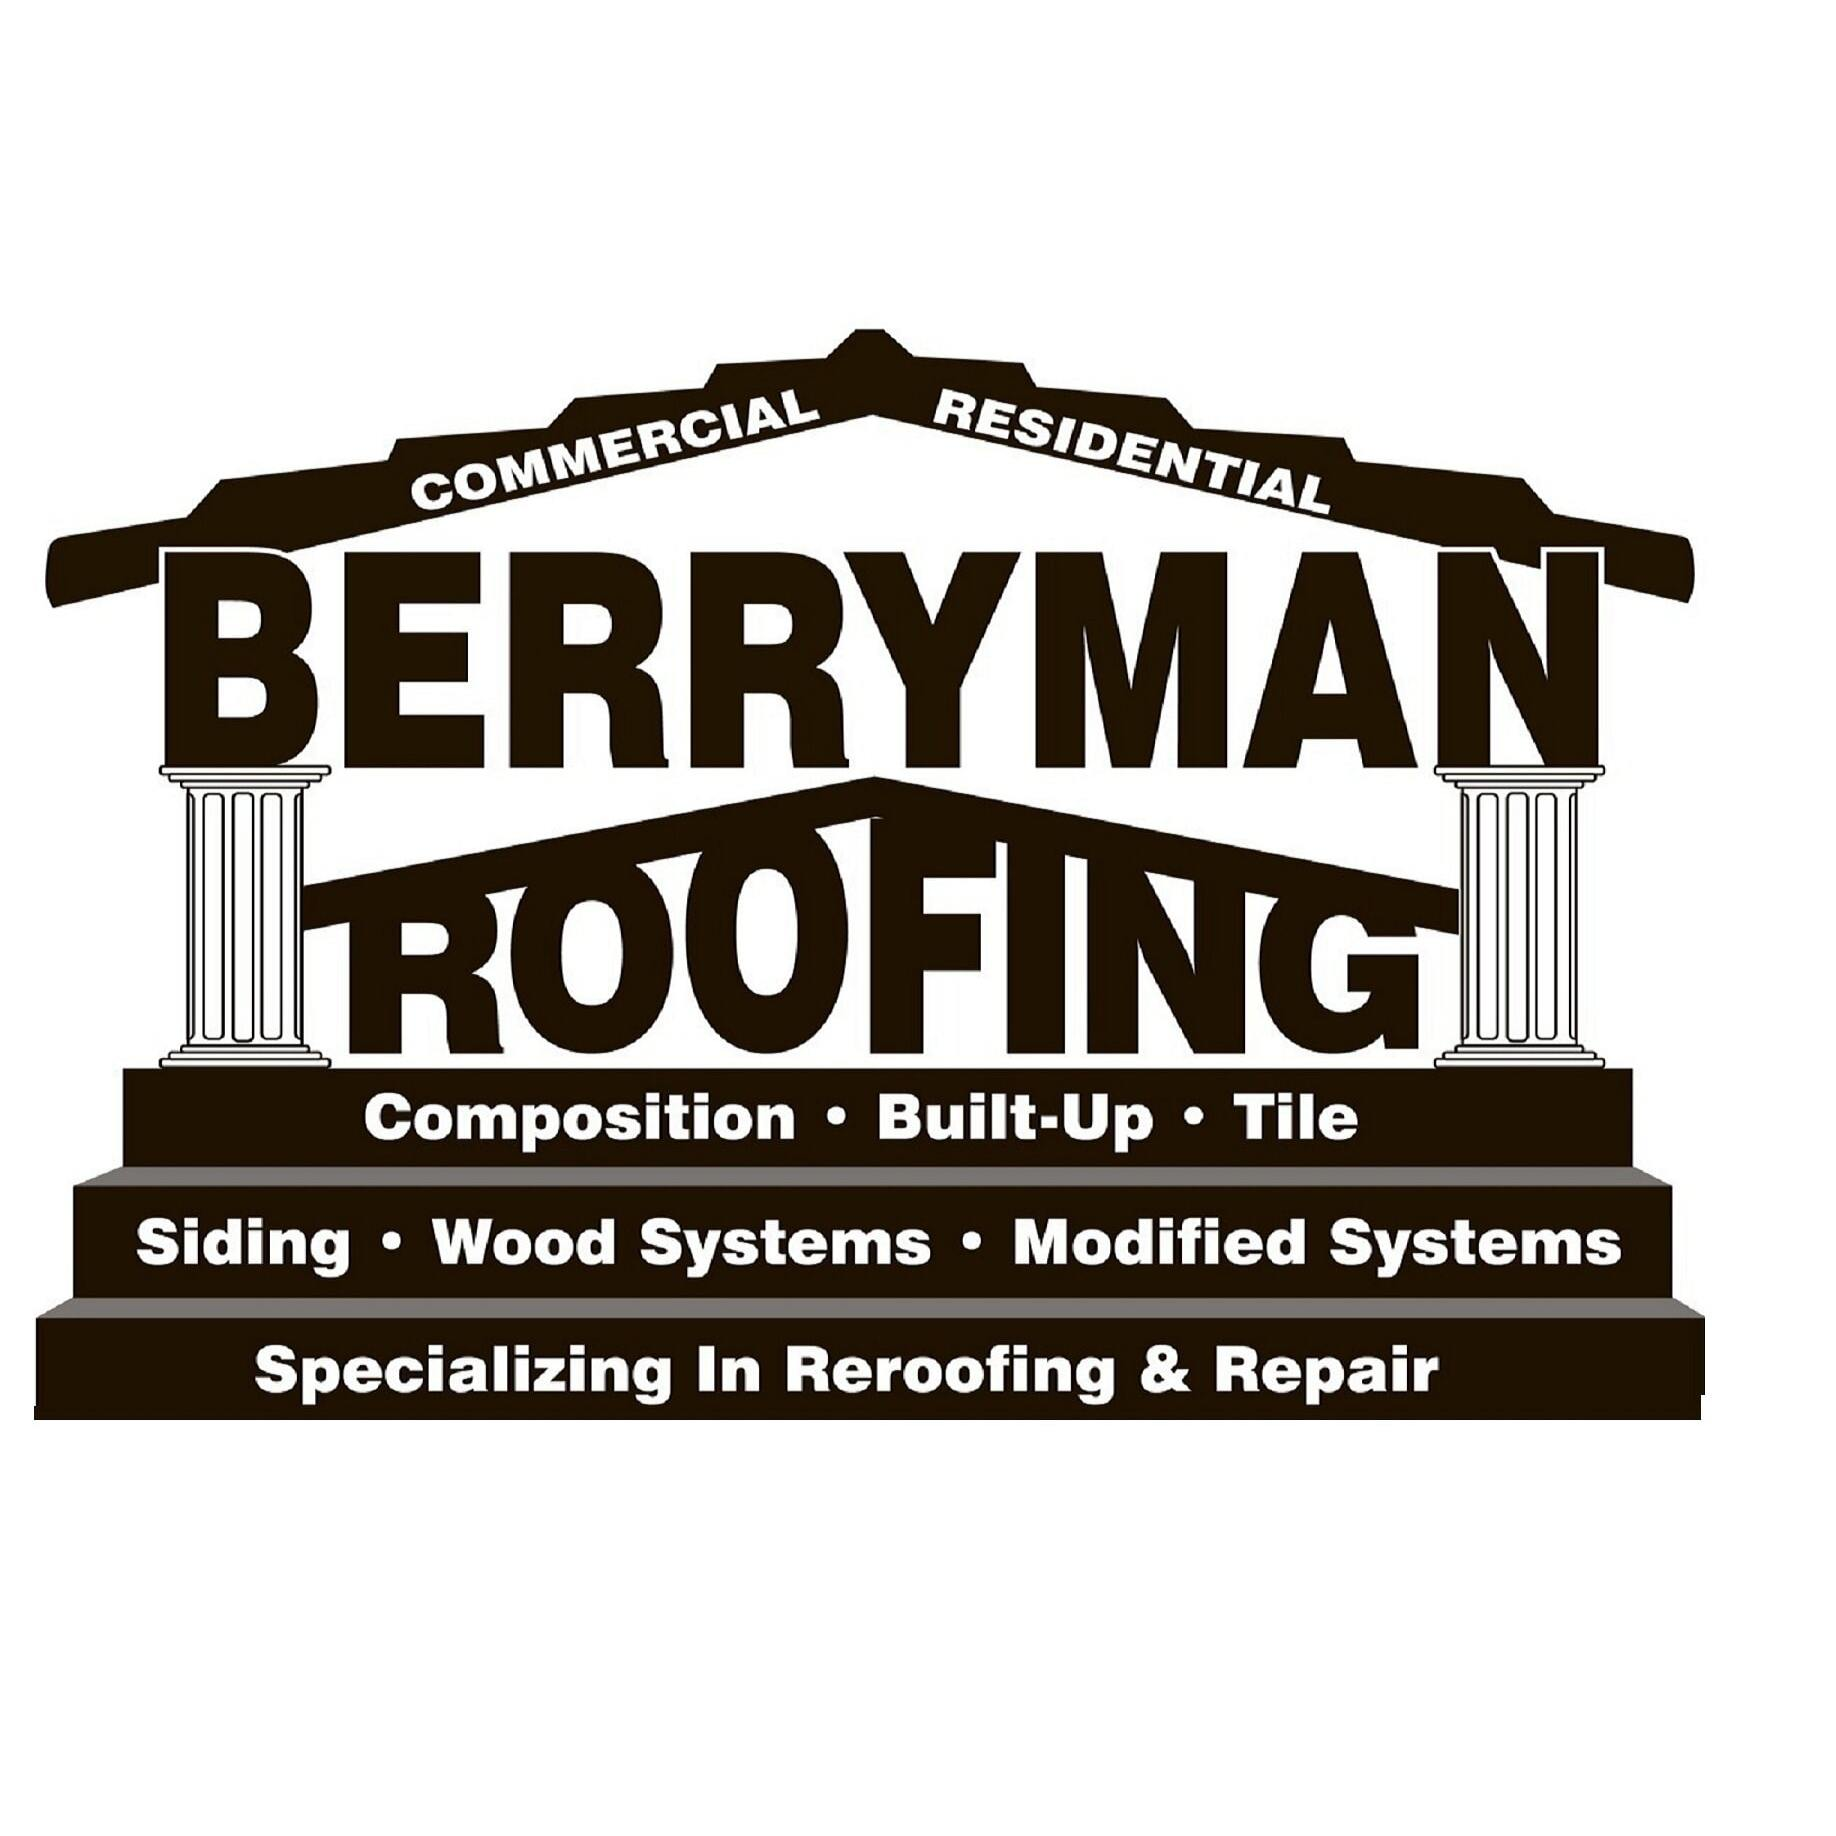 Berryman Roofing